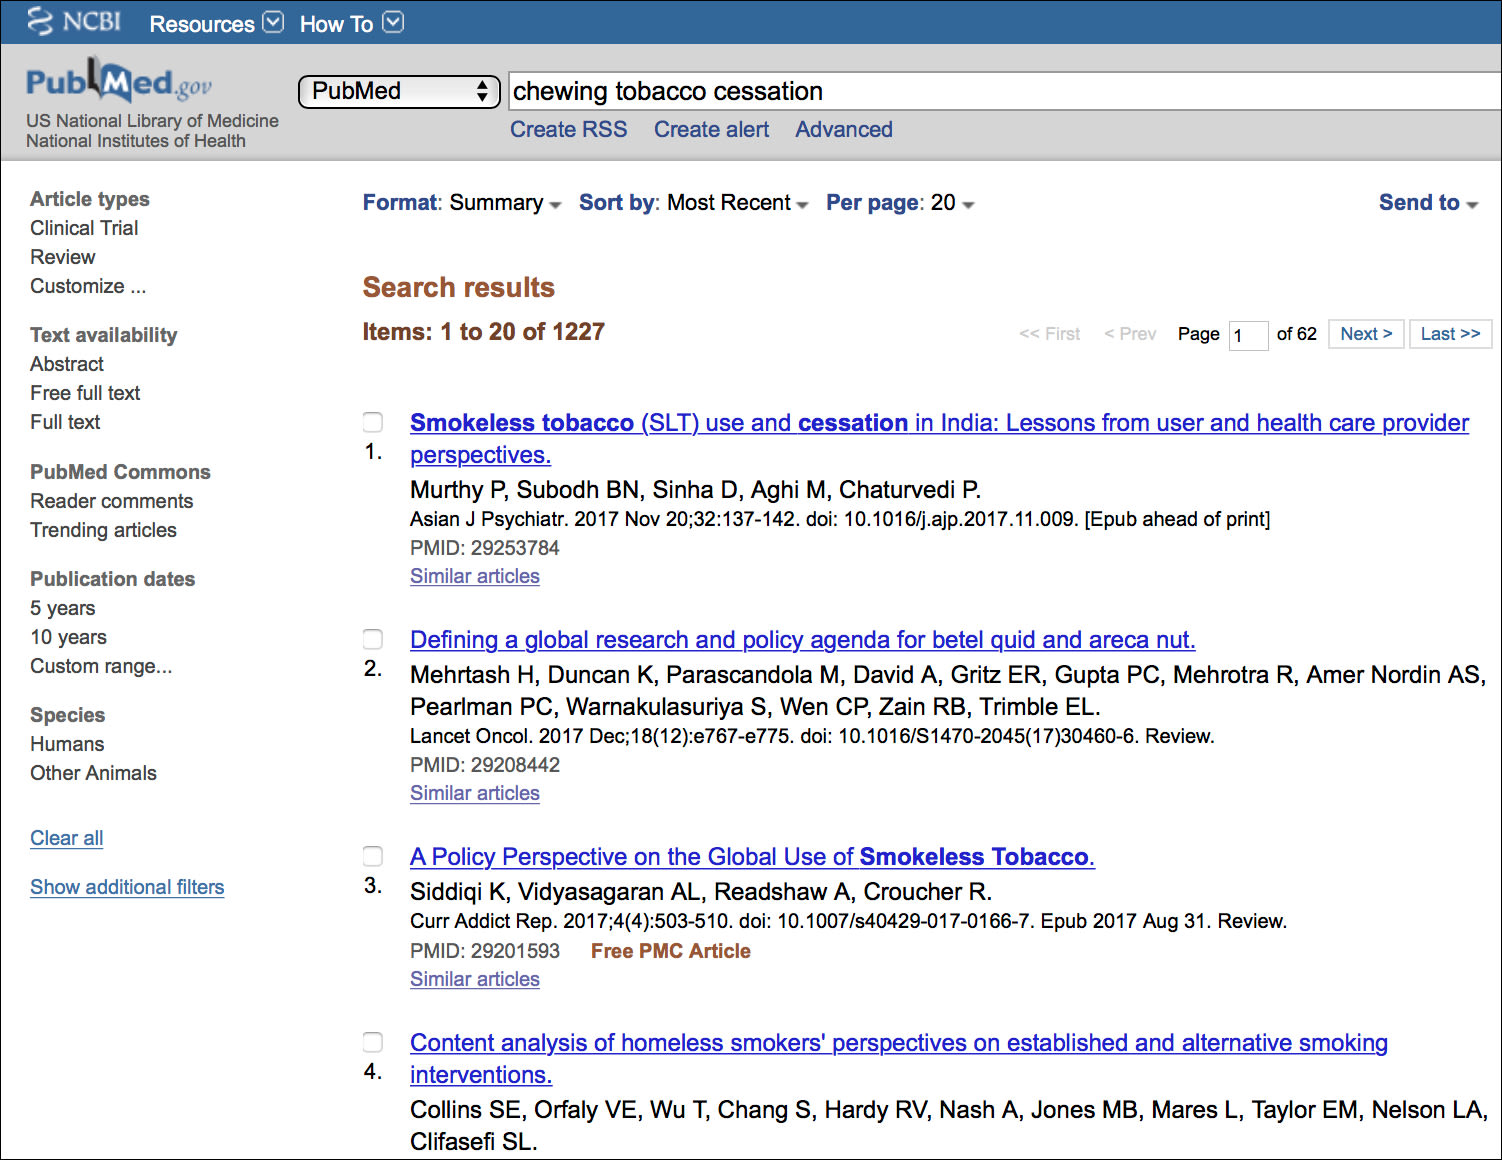 Image of Traditional PubMed Search for Chewing Tobacco Cessation.